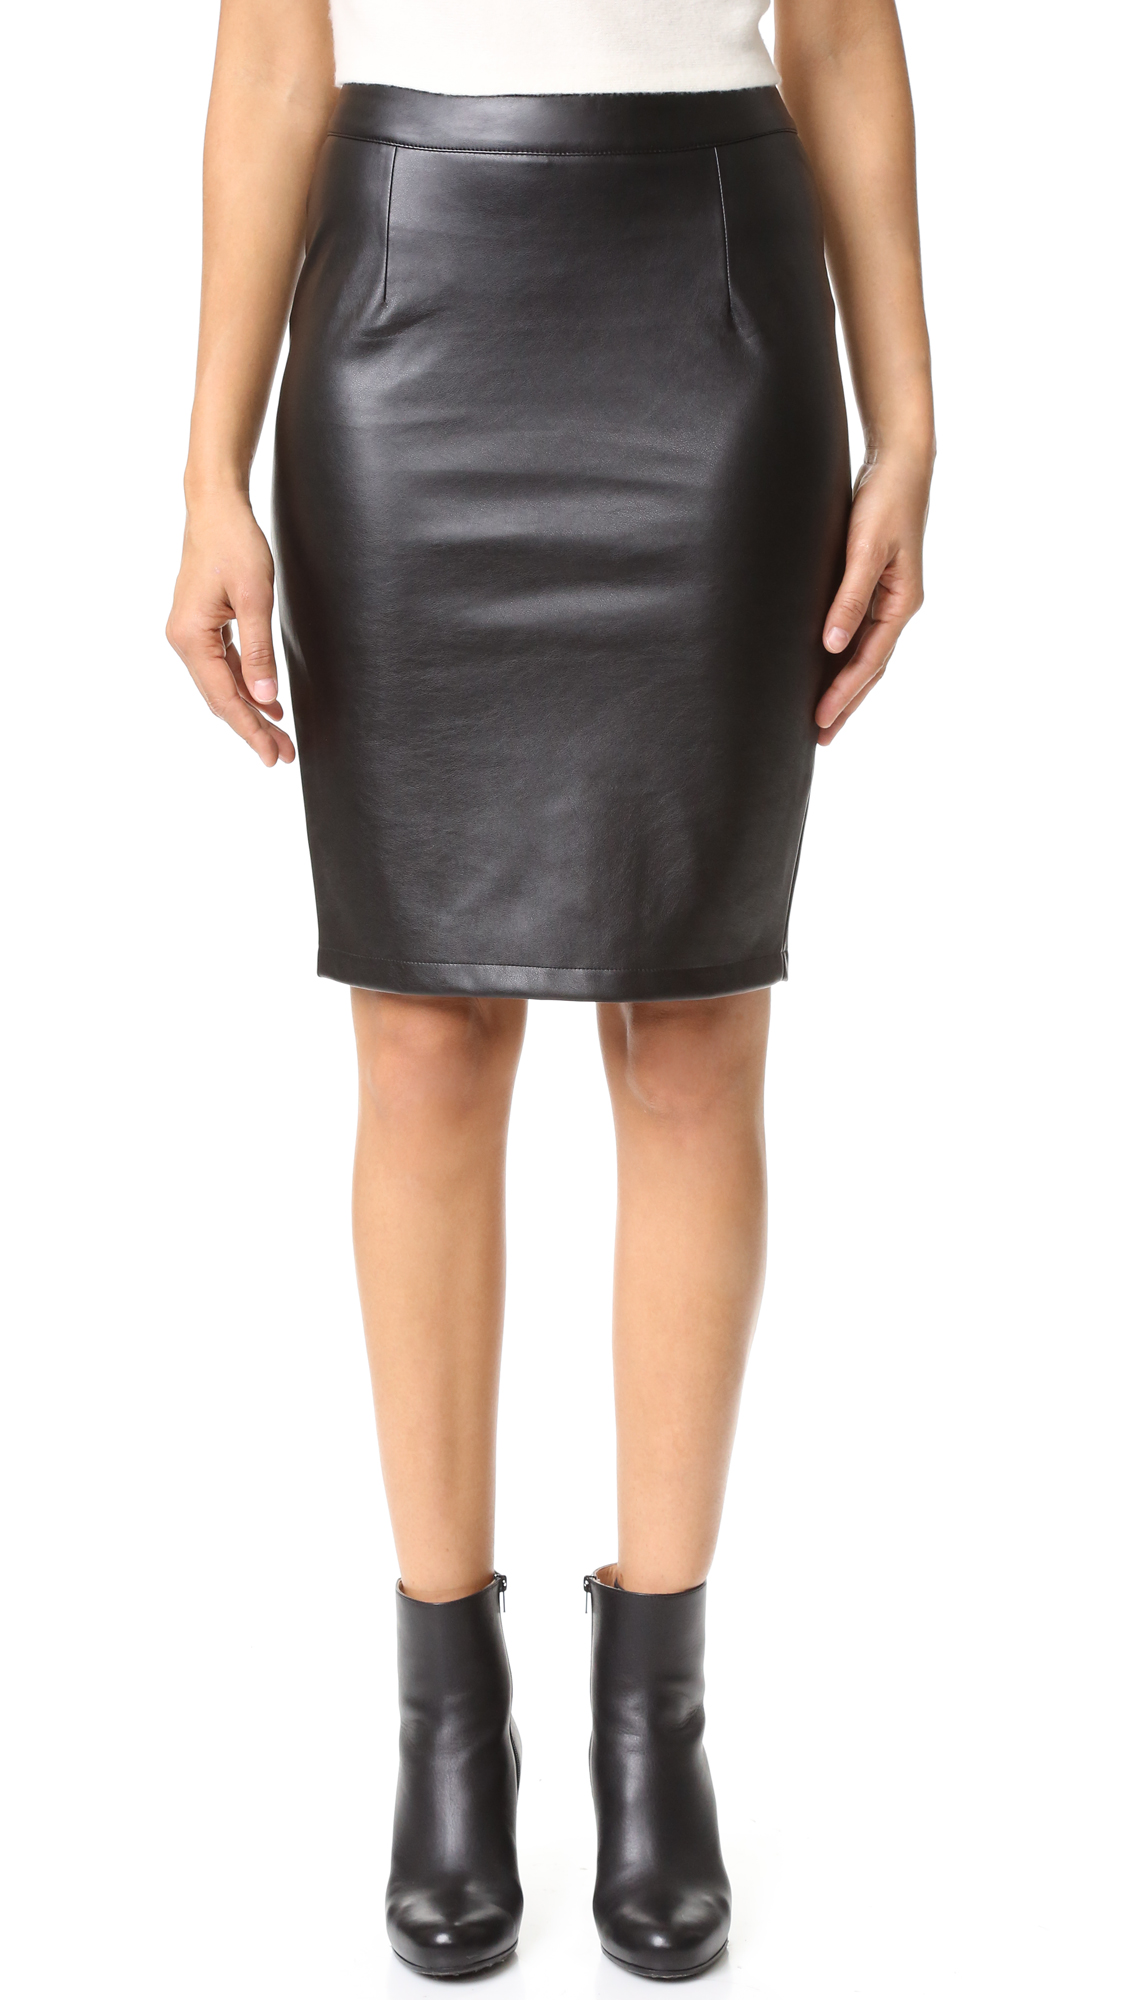 Soft, lightweight faux leather lends subtle edge to a classic cupcakes and cashmere pencil skirt. Exposed zip closure and vent at back. Brushed backing. Fabric: Faux leather. Shell: 100% polyurethane. Backing: 100% polyester. Spot clean. Imported, China. Measurements